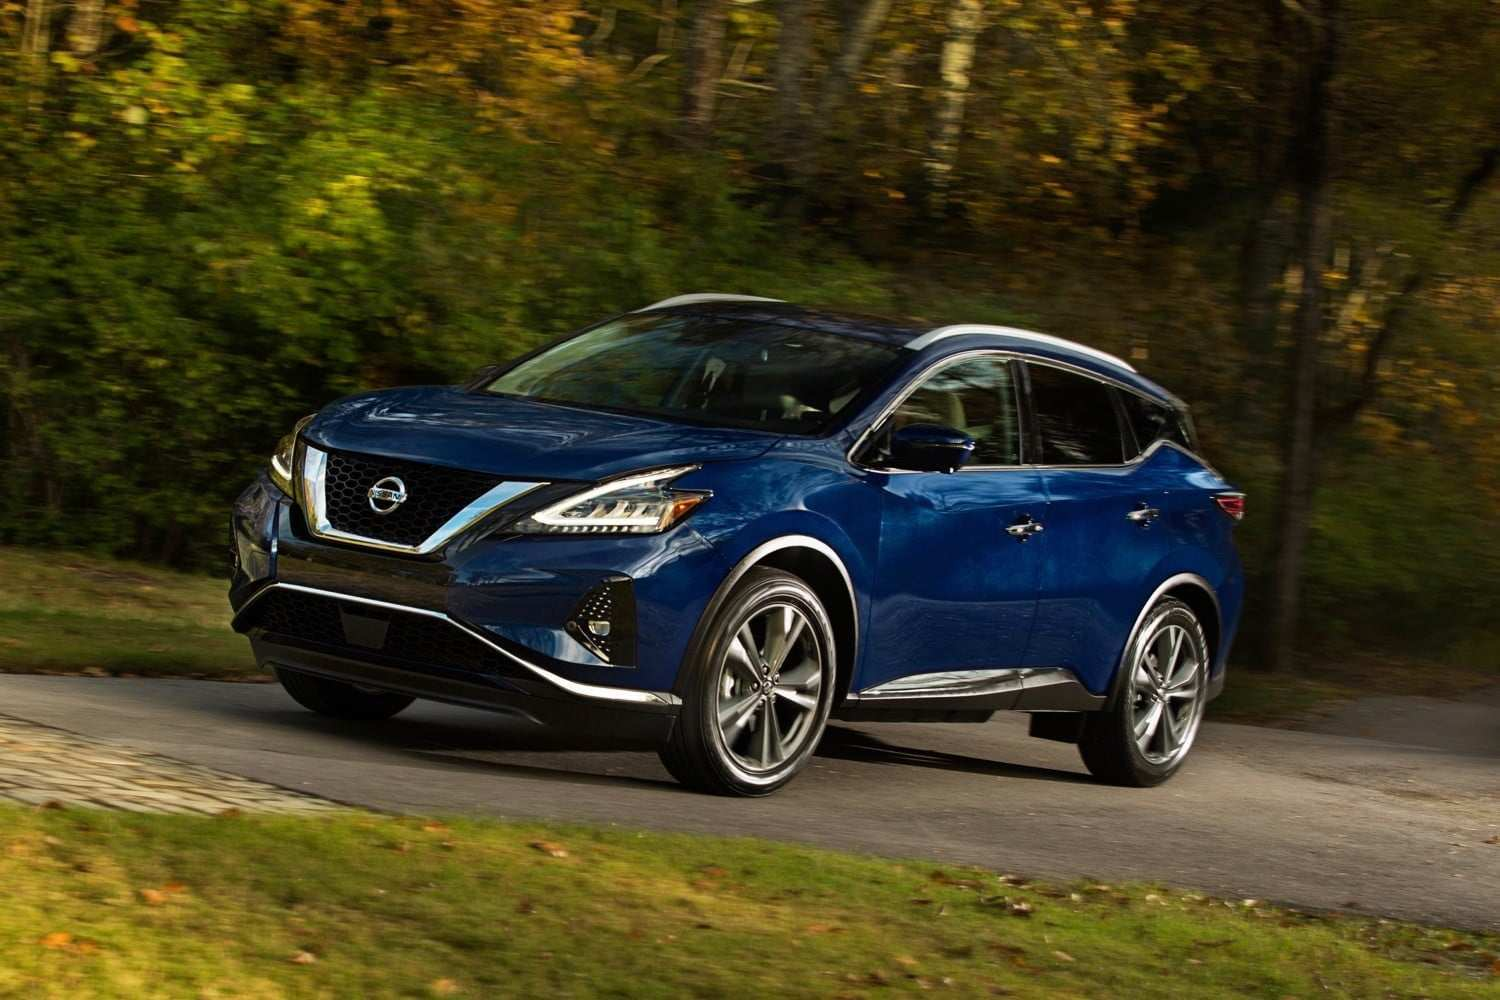 54 Great Nissan Usa 2020 Specs with Nissan Usa 2020